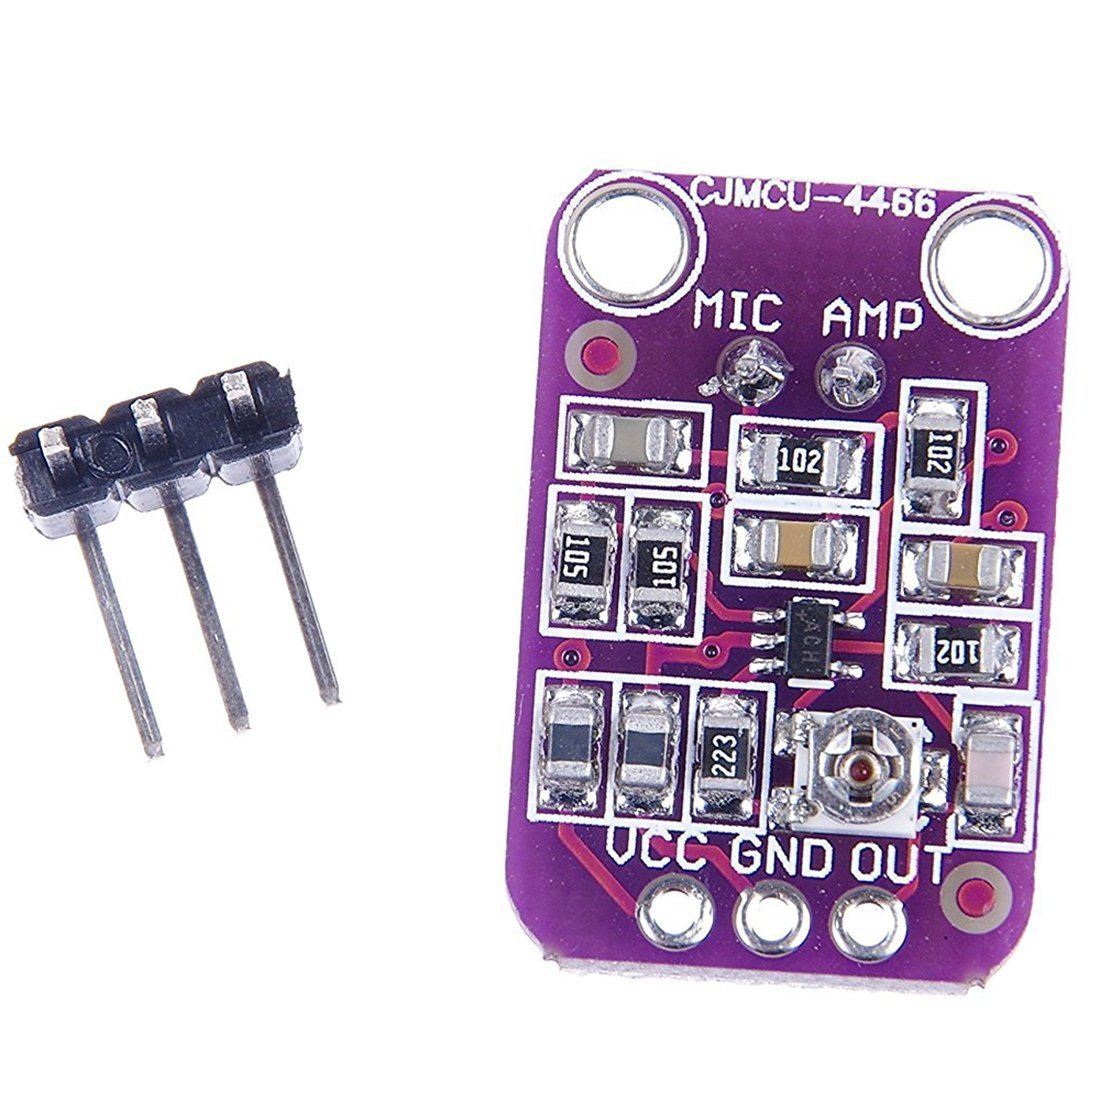 Rees52 Max4466 Electret Microphone Amplifier Adjustable Gain For Arduino Industrial Scientific